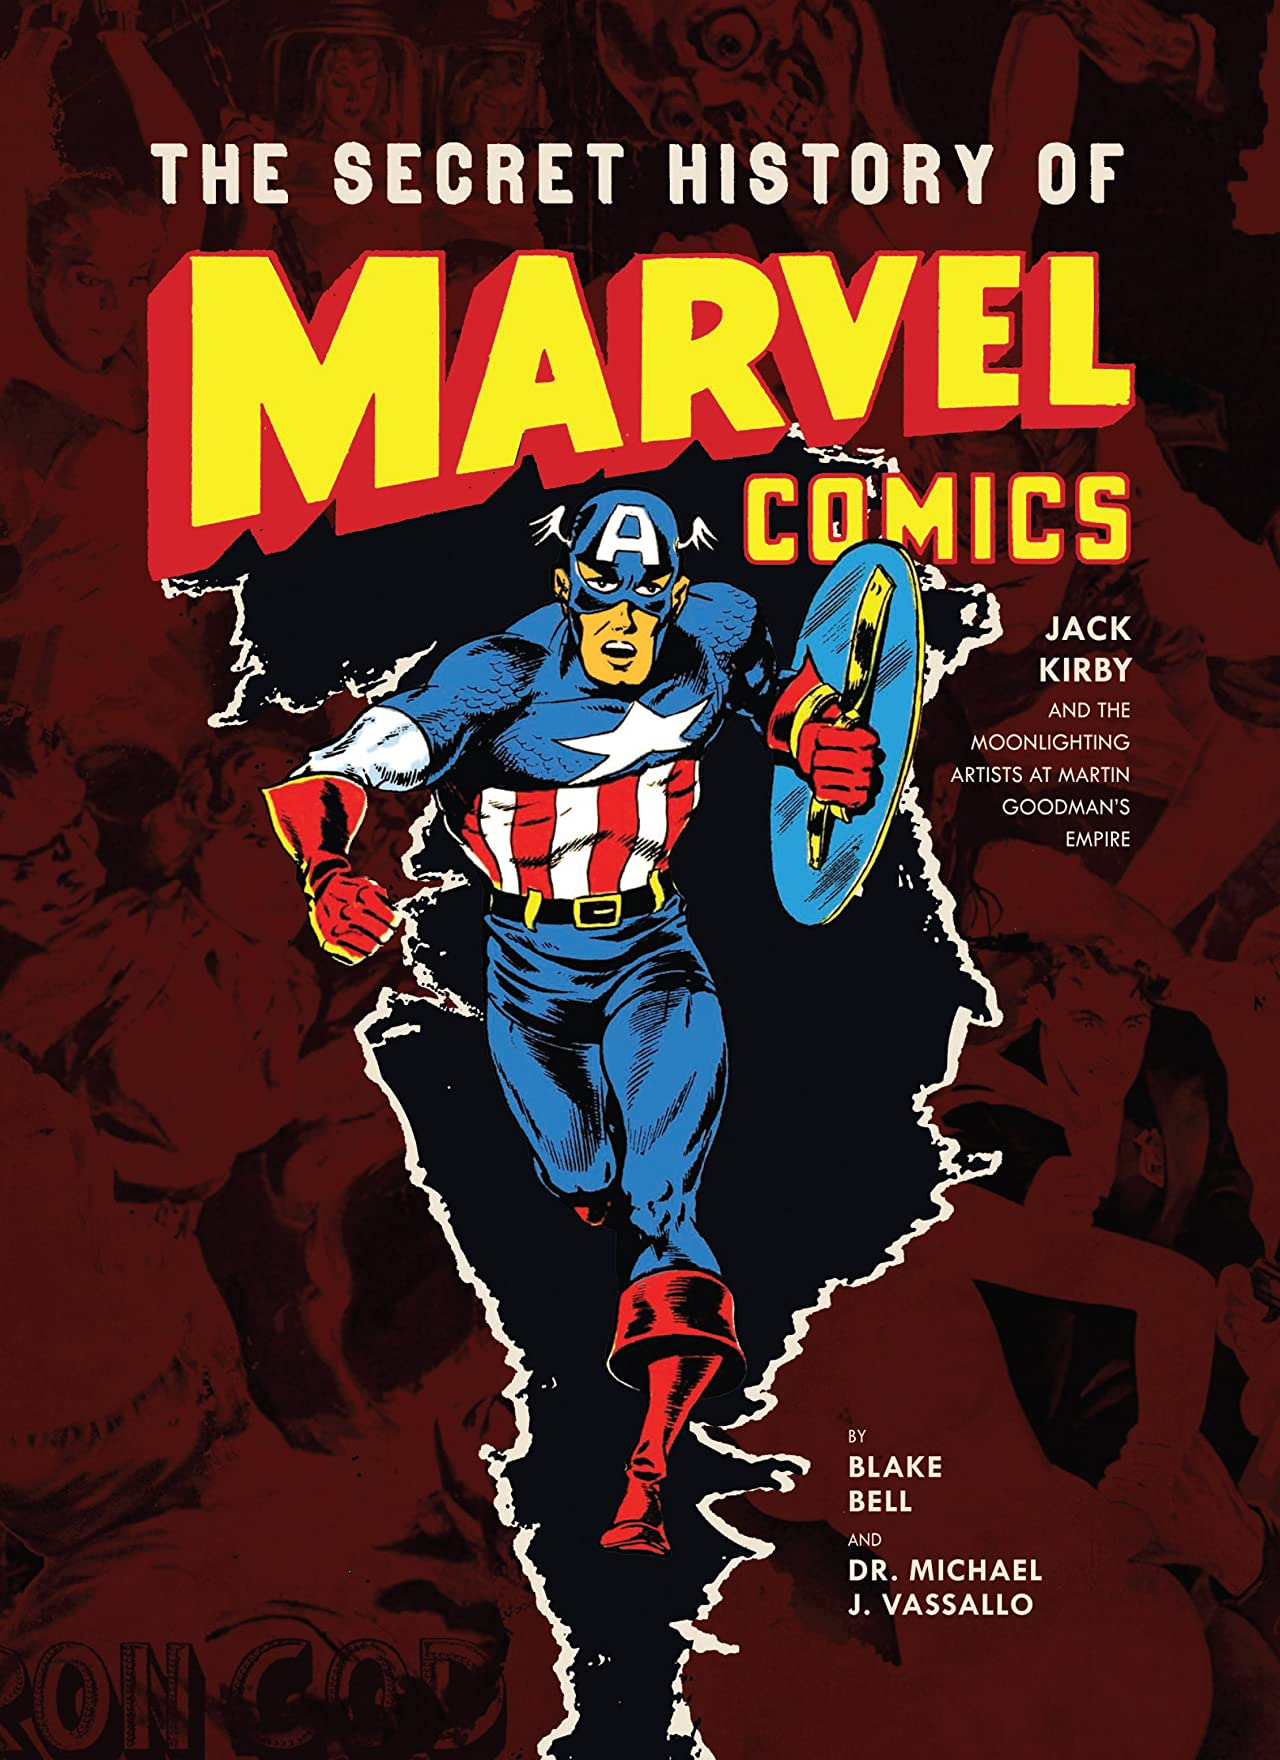 The Secret History of Marvel Comics: Jack Kirby and the Moonlighting Artists at Martin Goodman's Empire